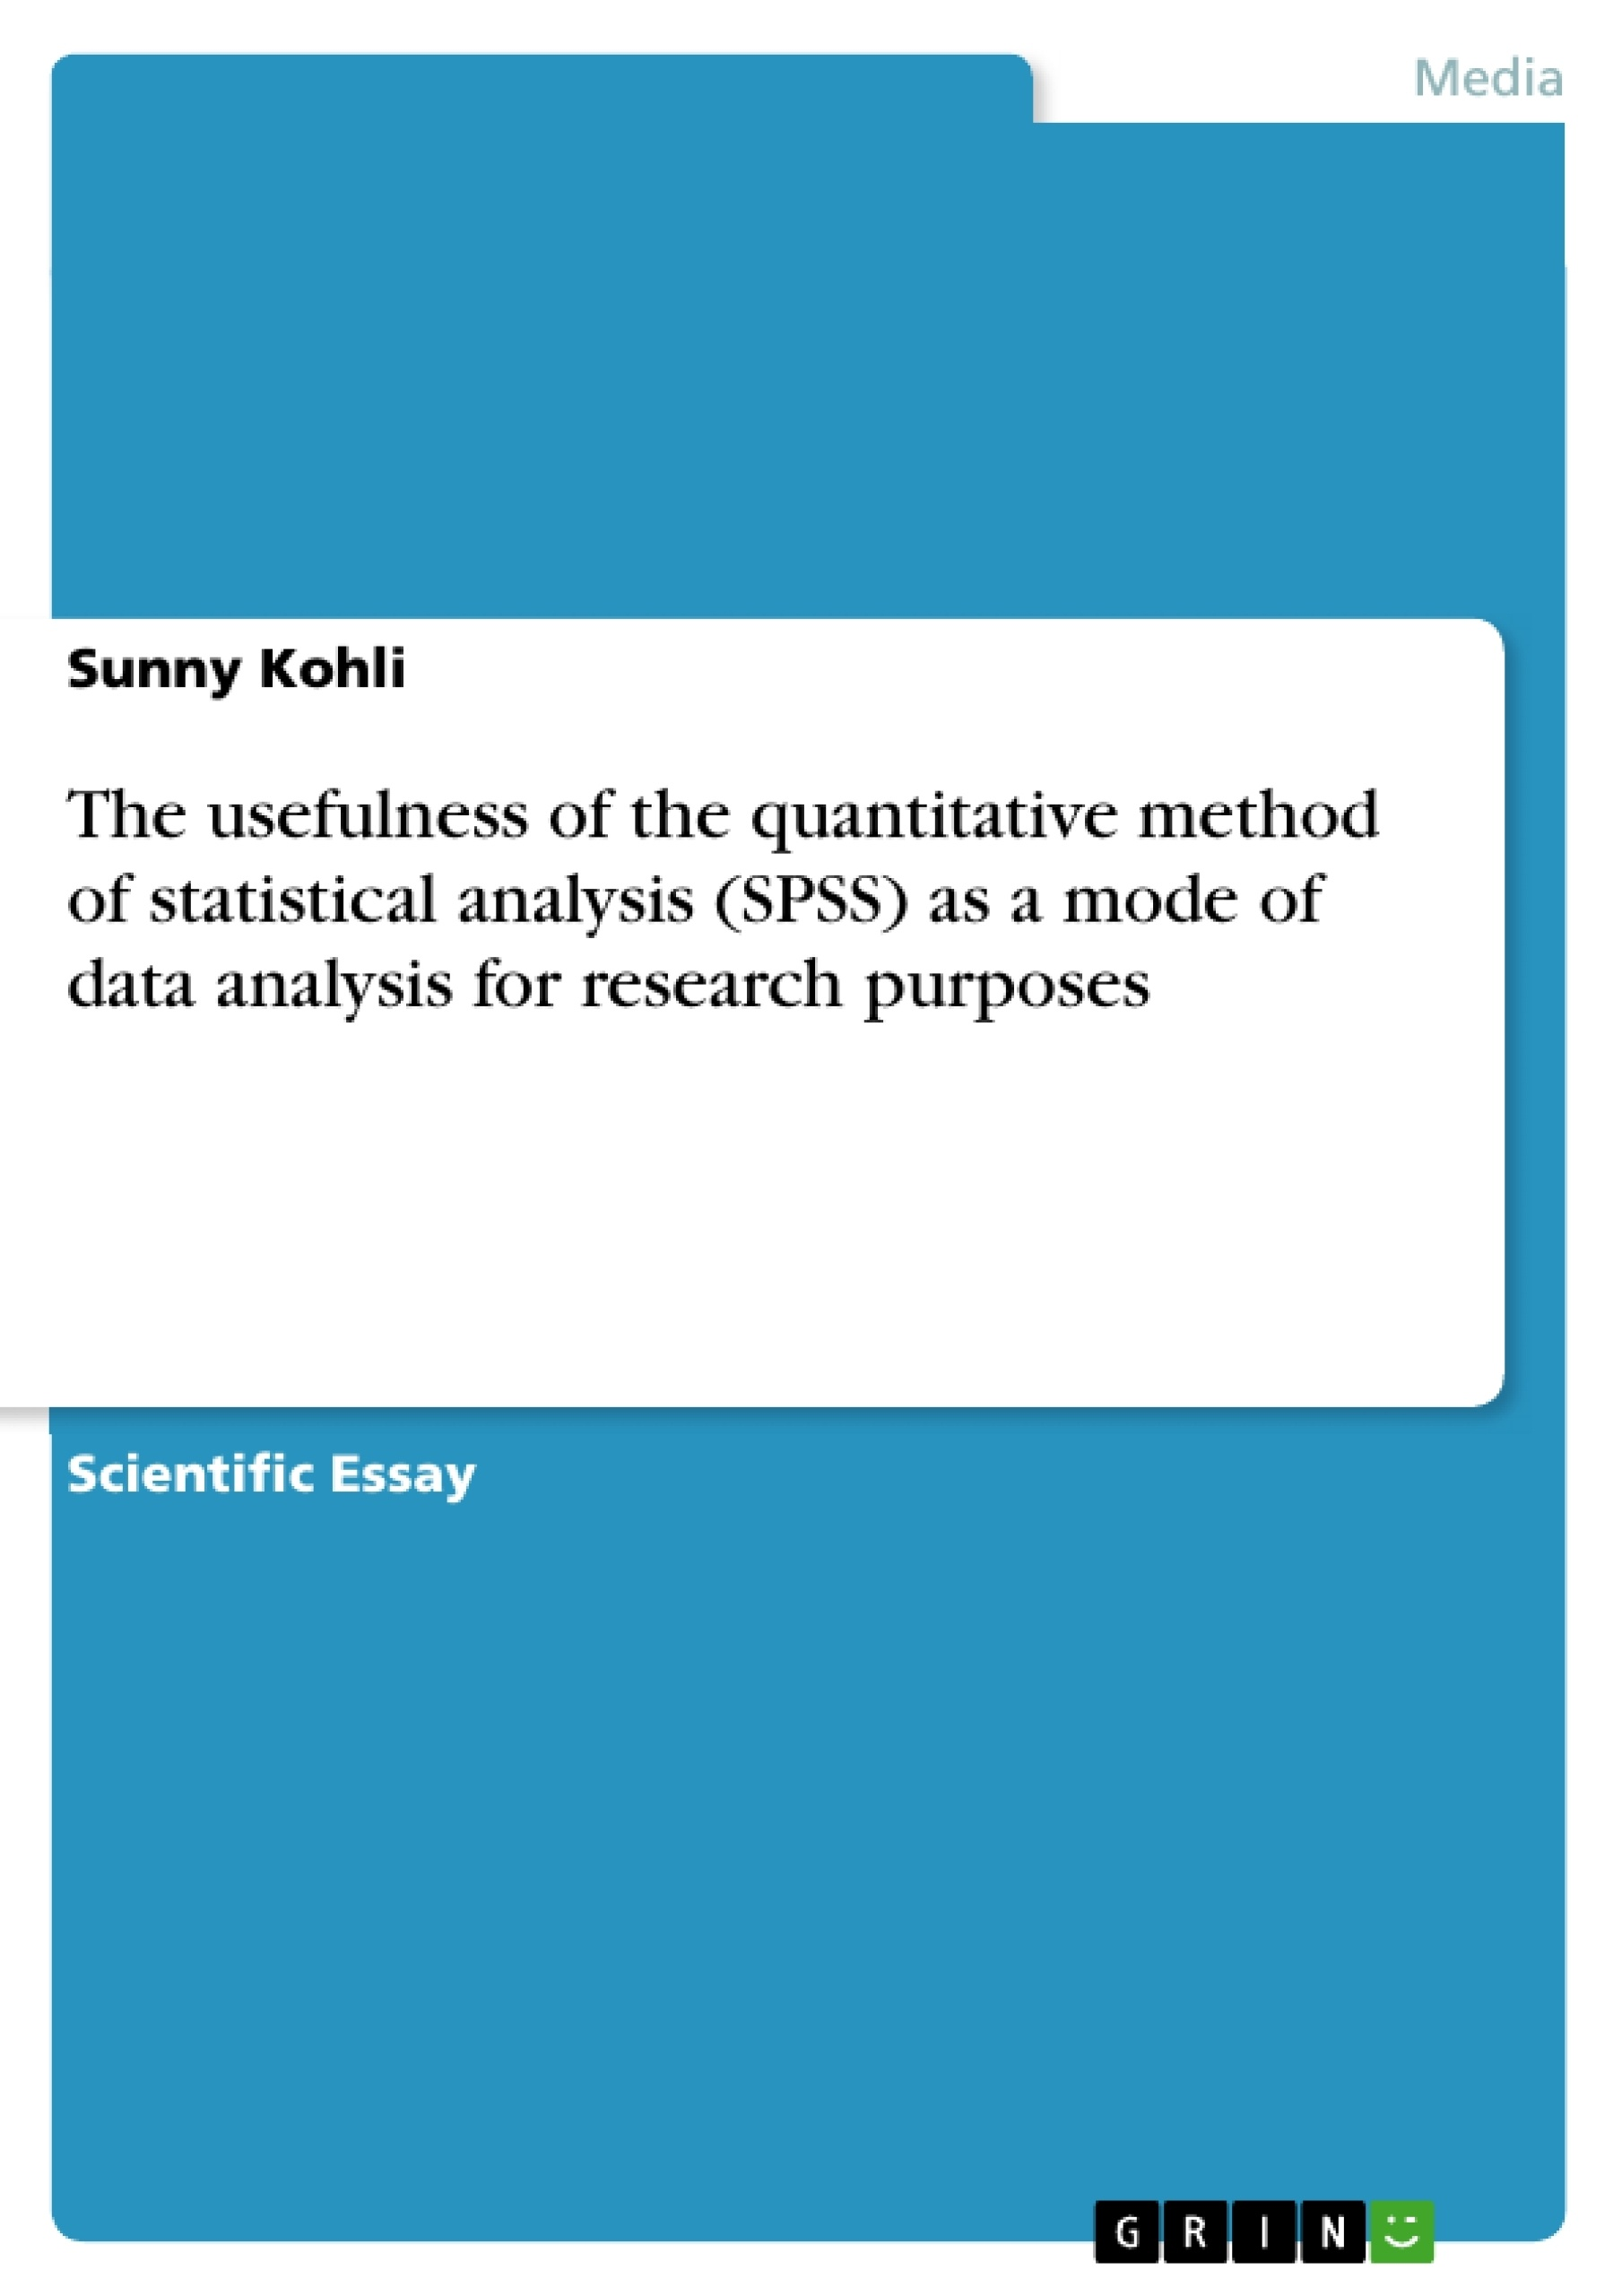 The usefulness of the quantitative method of statistical analysis ...